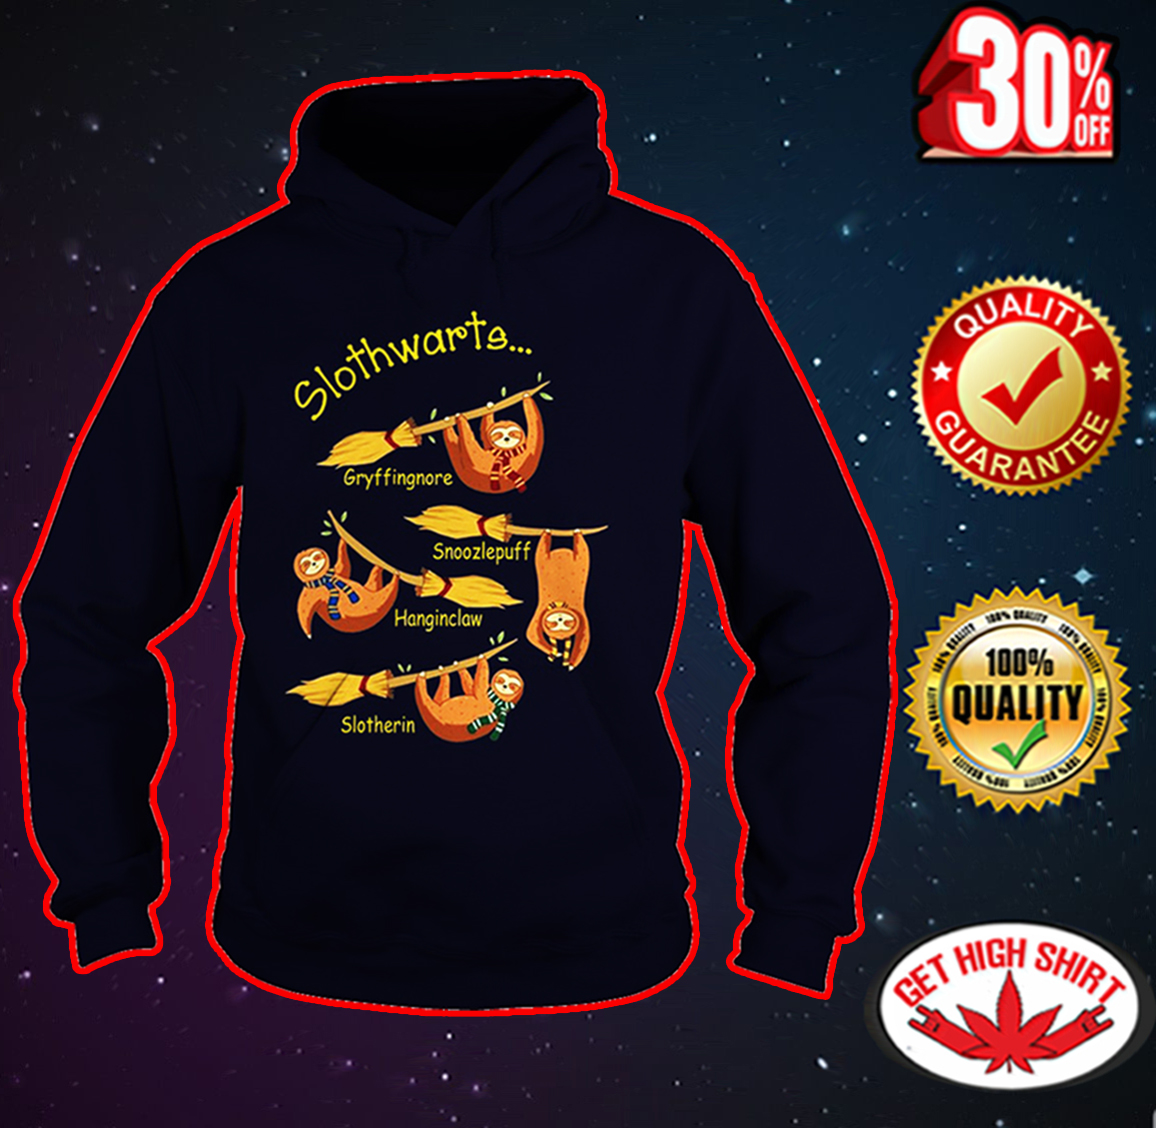 Slothwarts Gryffinsnore Snoozlepuff Hanginclaw Slotherin hoodie